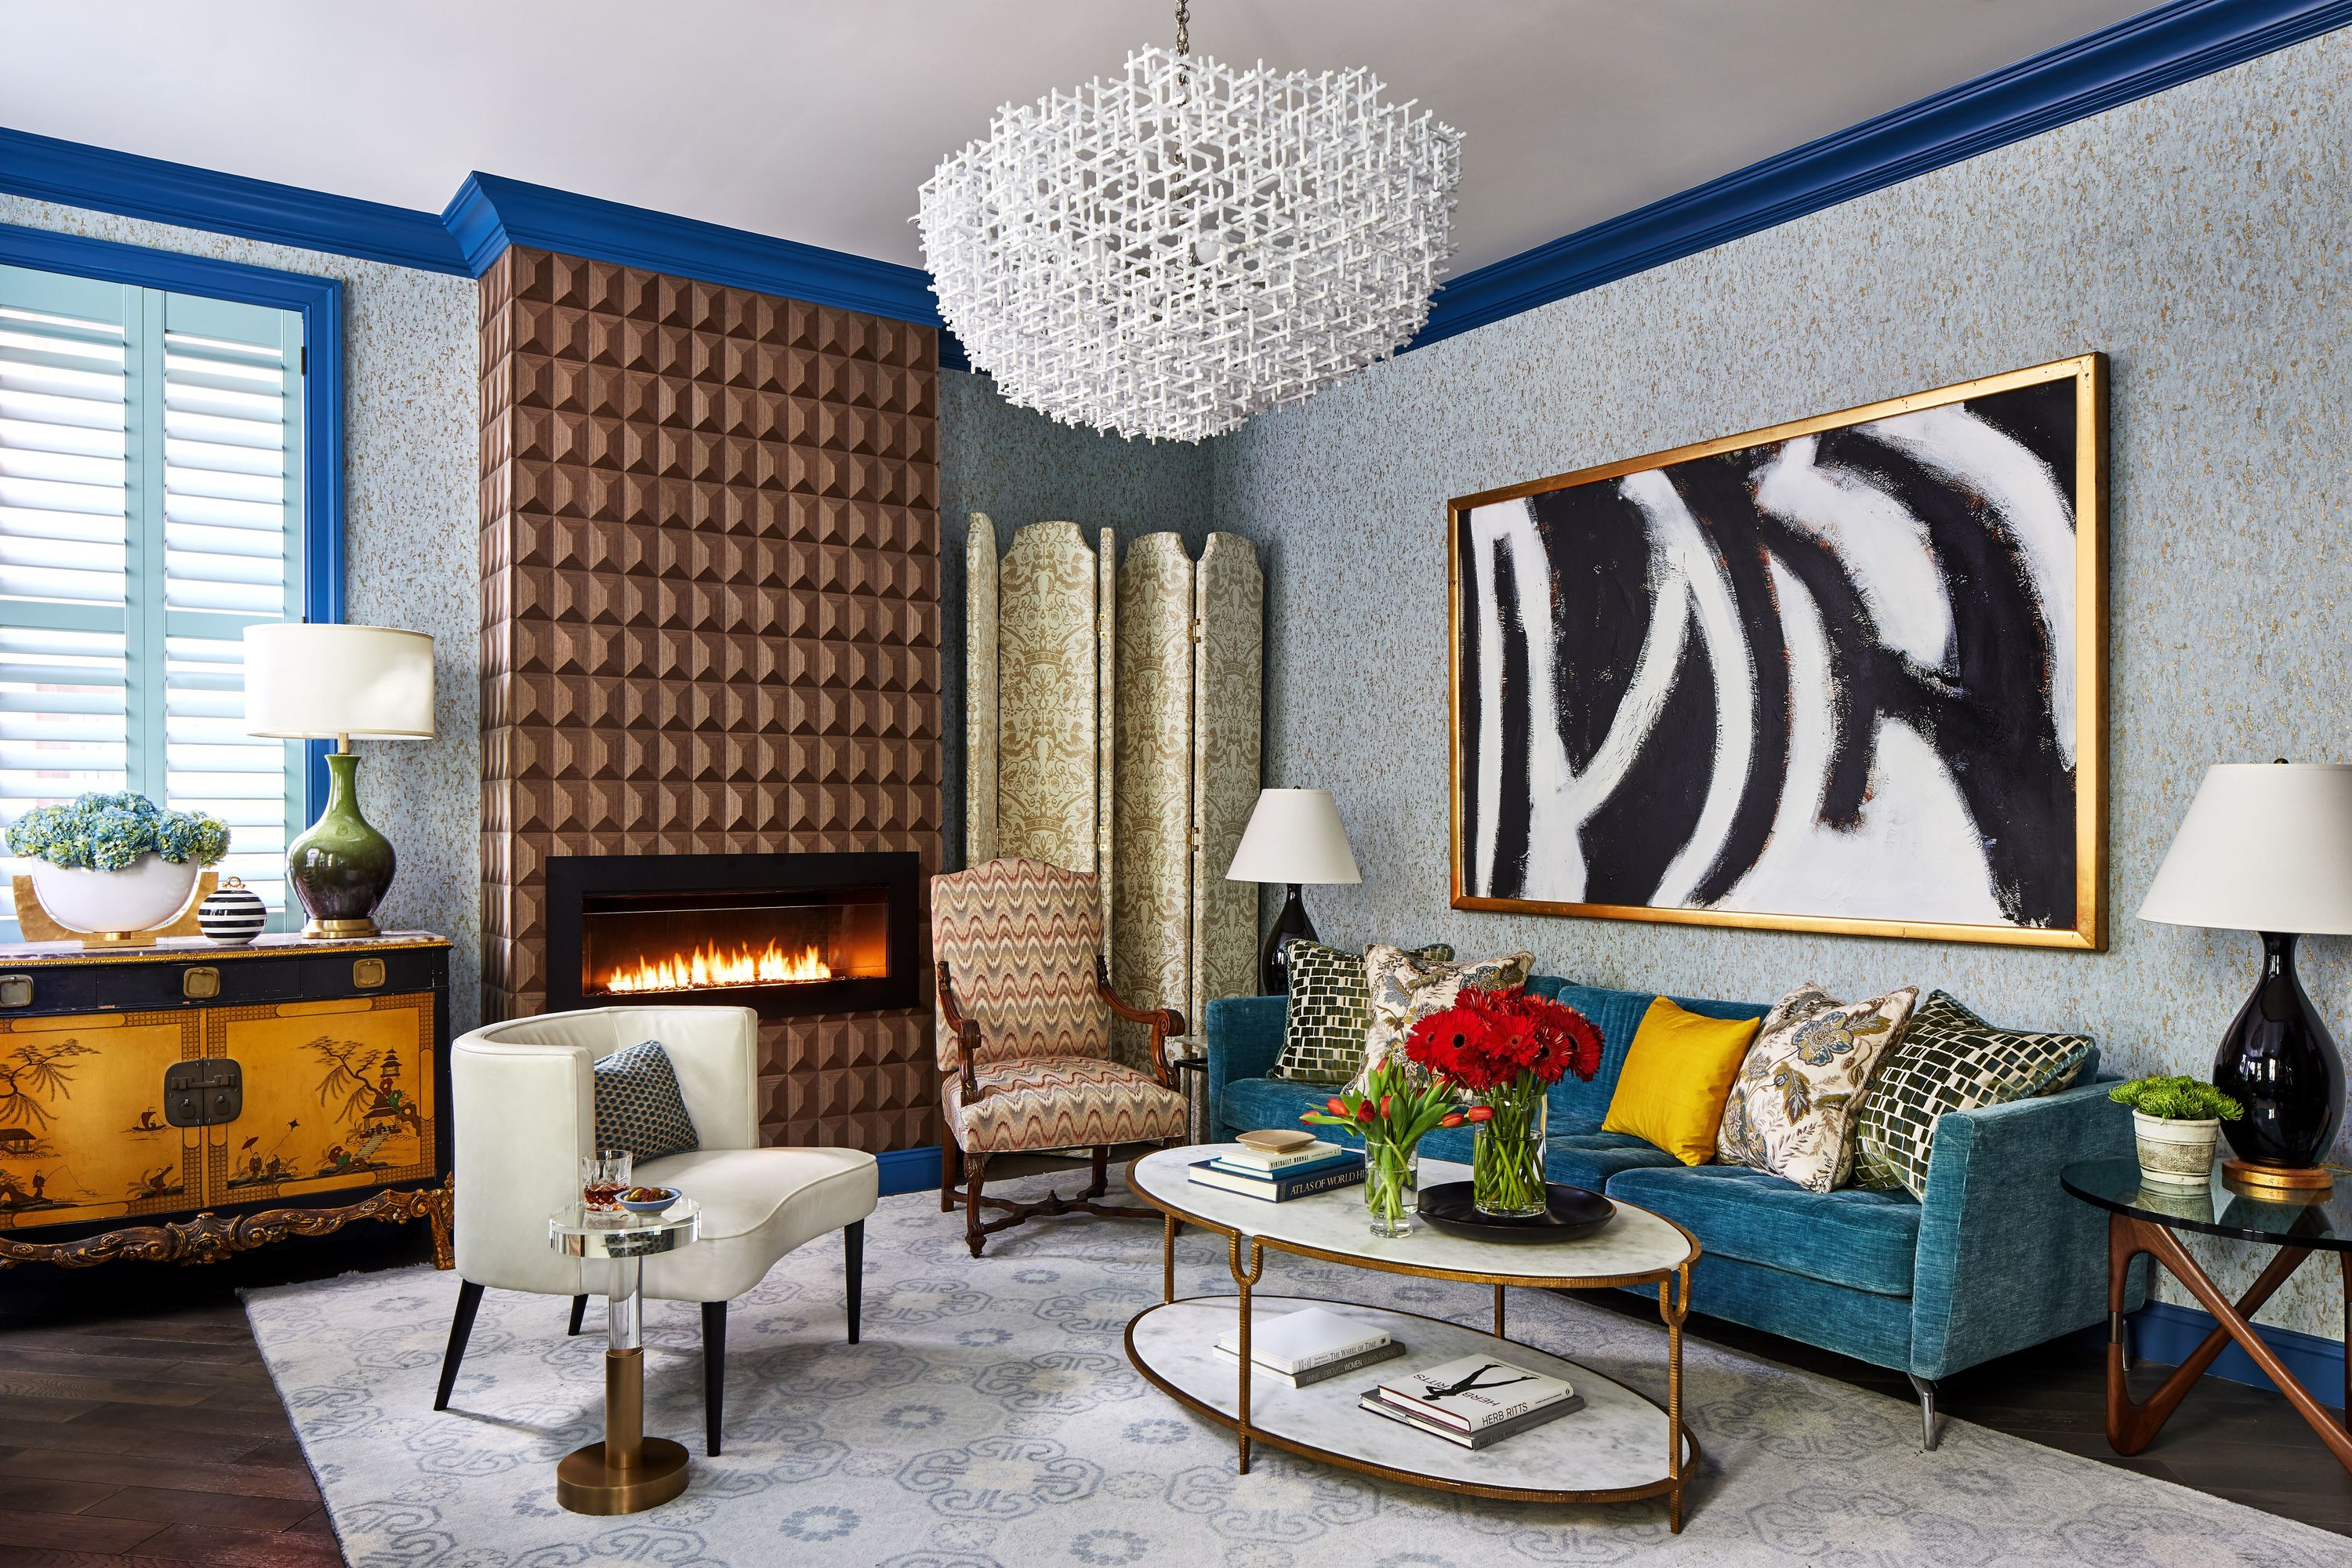 2-Contemporary-Living-Room-Top-Decorator-Best-Interior-Designers-Boston-South-End-Back-Bay-Seaport-Dane-Austin-Design.jpeg